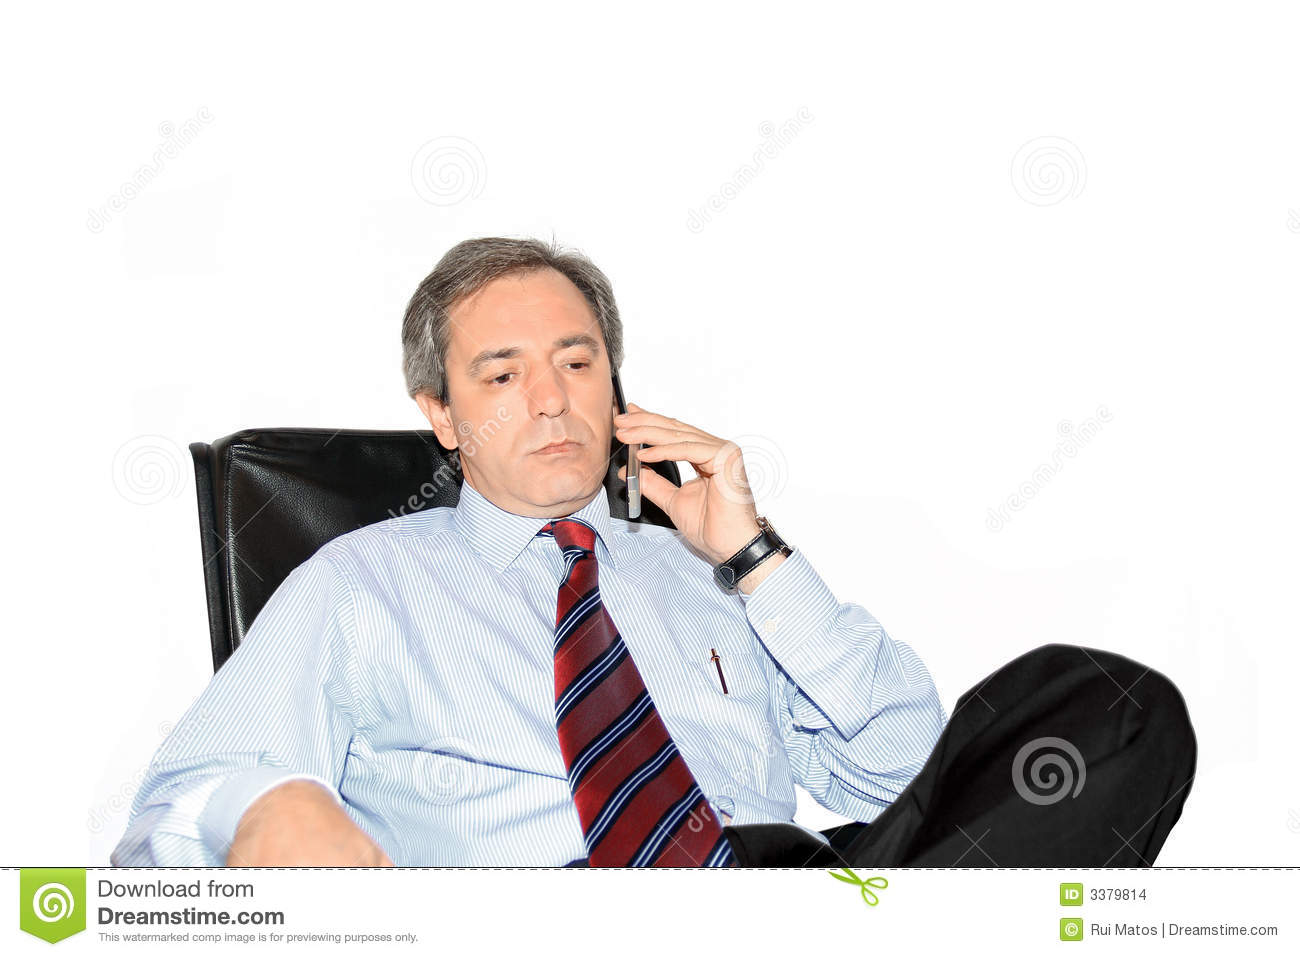 business-man-phone-3379814.jpg